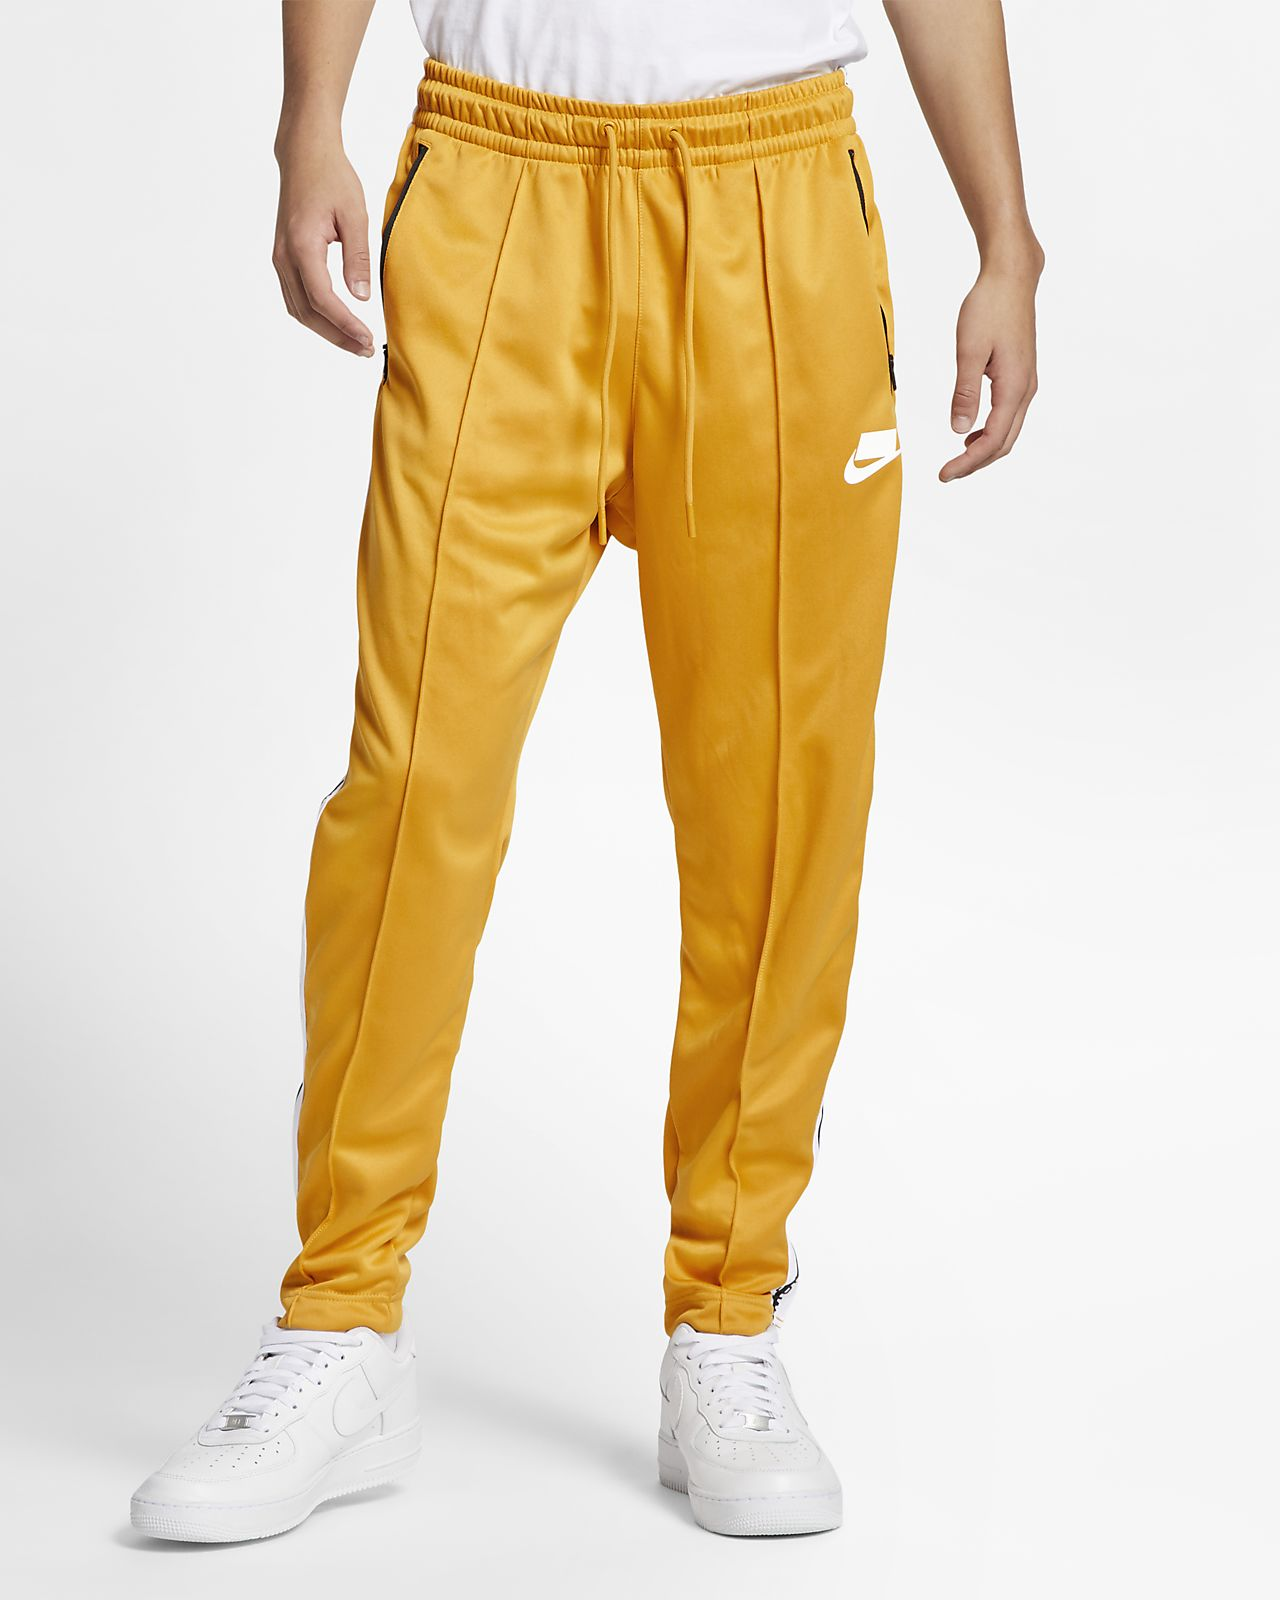 Nsw Tracksuit Nike Tracksuit Bottoms Sportswear Nike Nike Sportswear Bottoms Nsw mN8wn0Ov